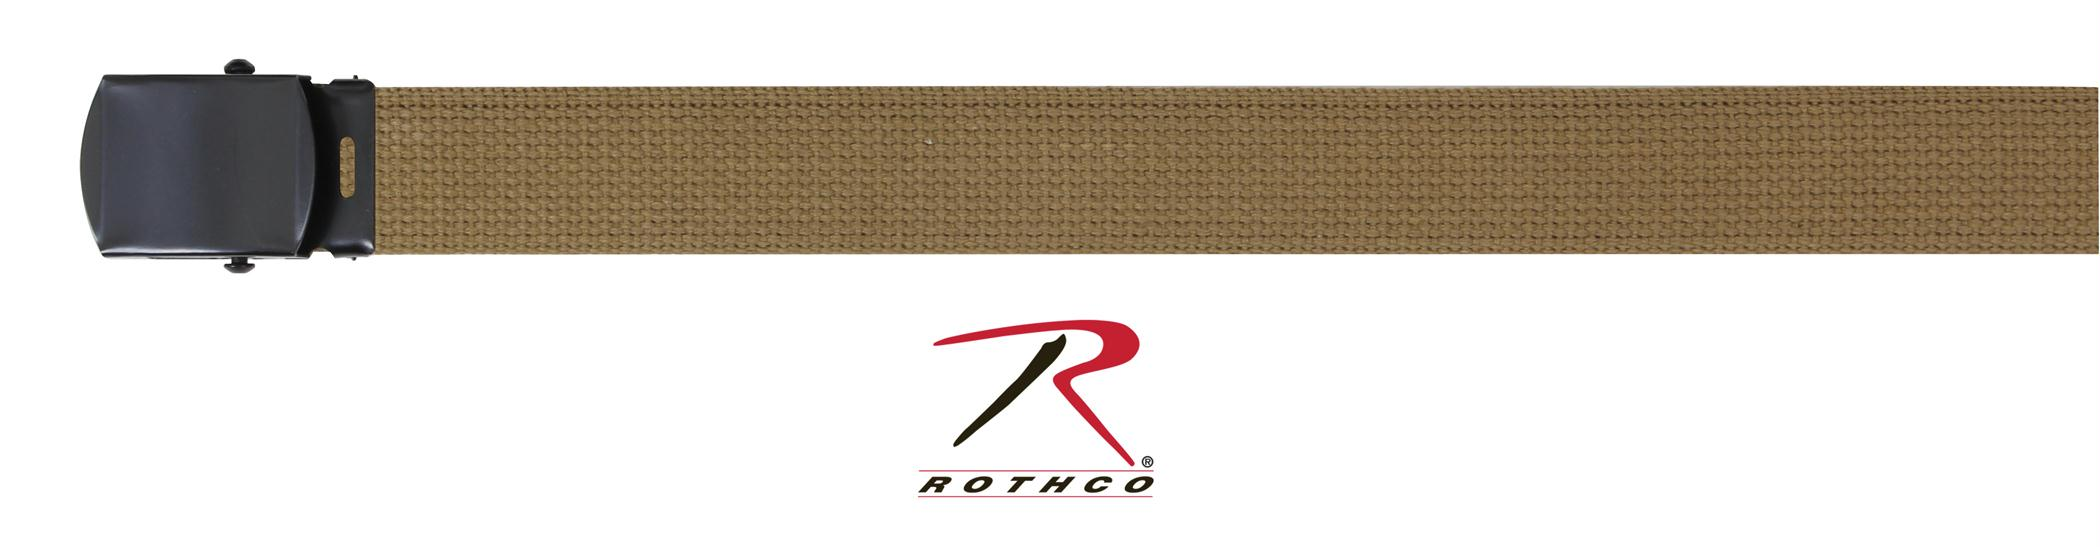 Rothco Military Web Belts w/ Black Buckle - Coyote Brown / 54 Inches